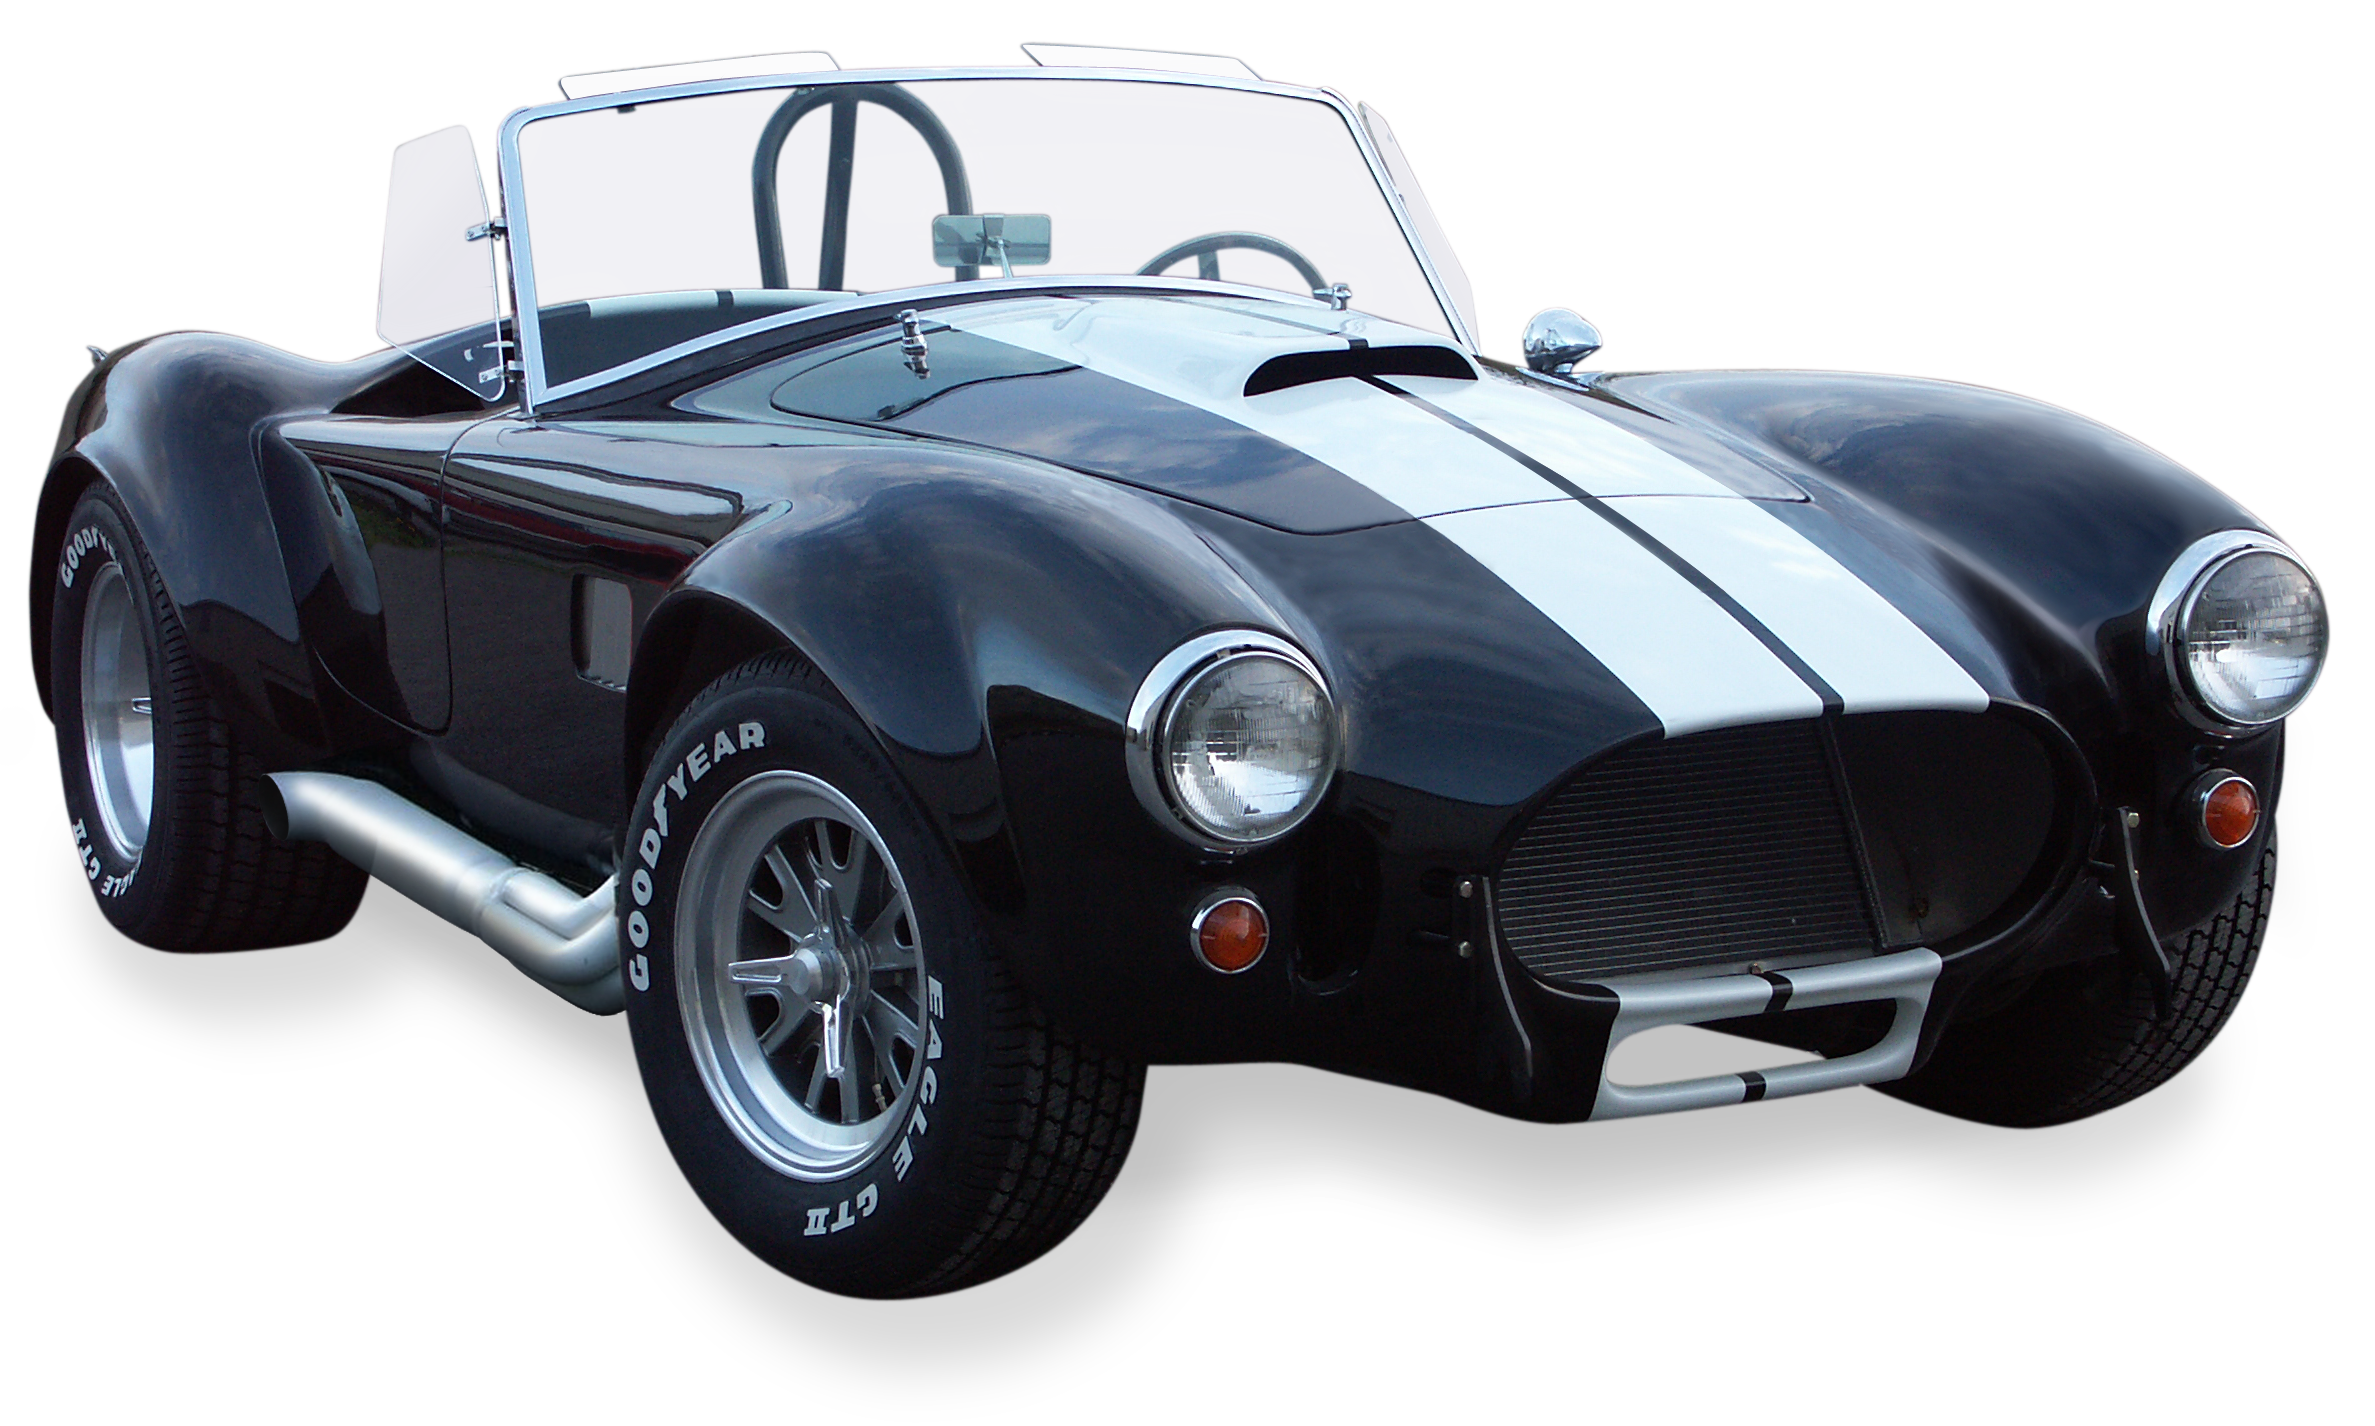 D No Kickdown New Edelbrock Carb in addition Religion Hunchback Hunchback Of Notre Dame Bells Ringing Bells Ringtones Aken Low moreover Vw Beetle Wiring Diagram additionally  moreover . on 1965 tvr wiring diagram